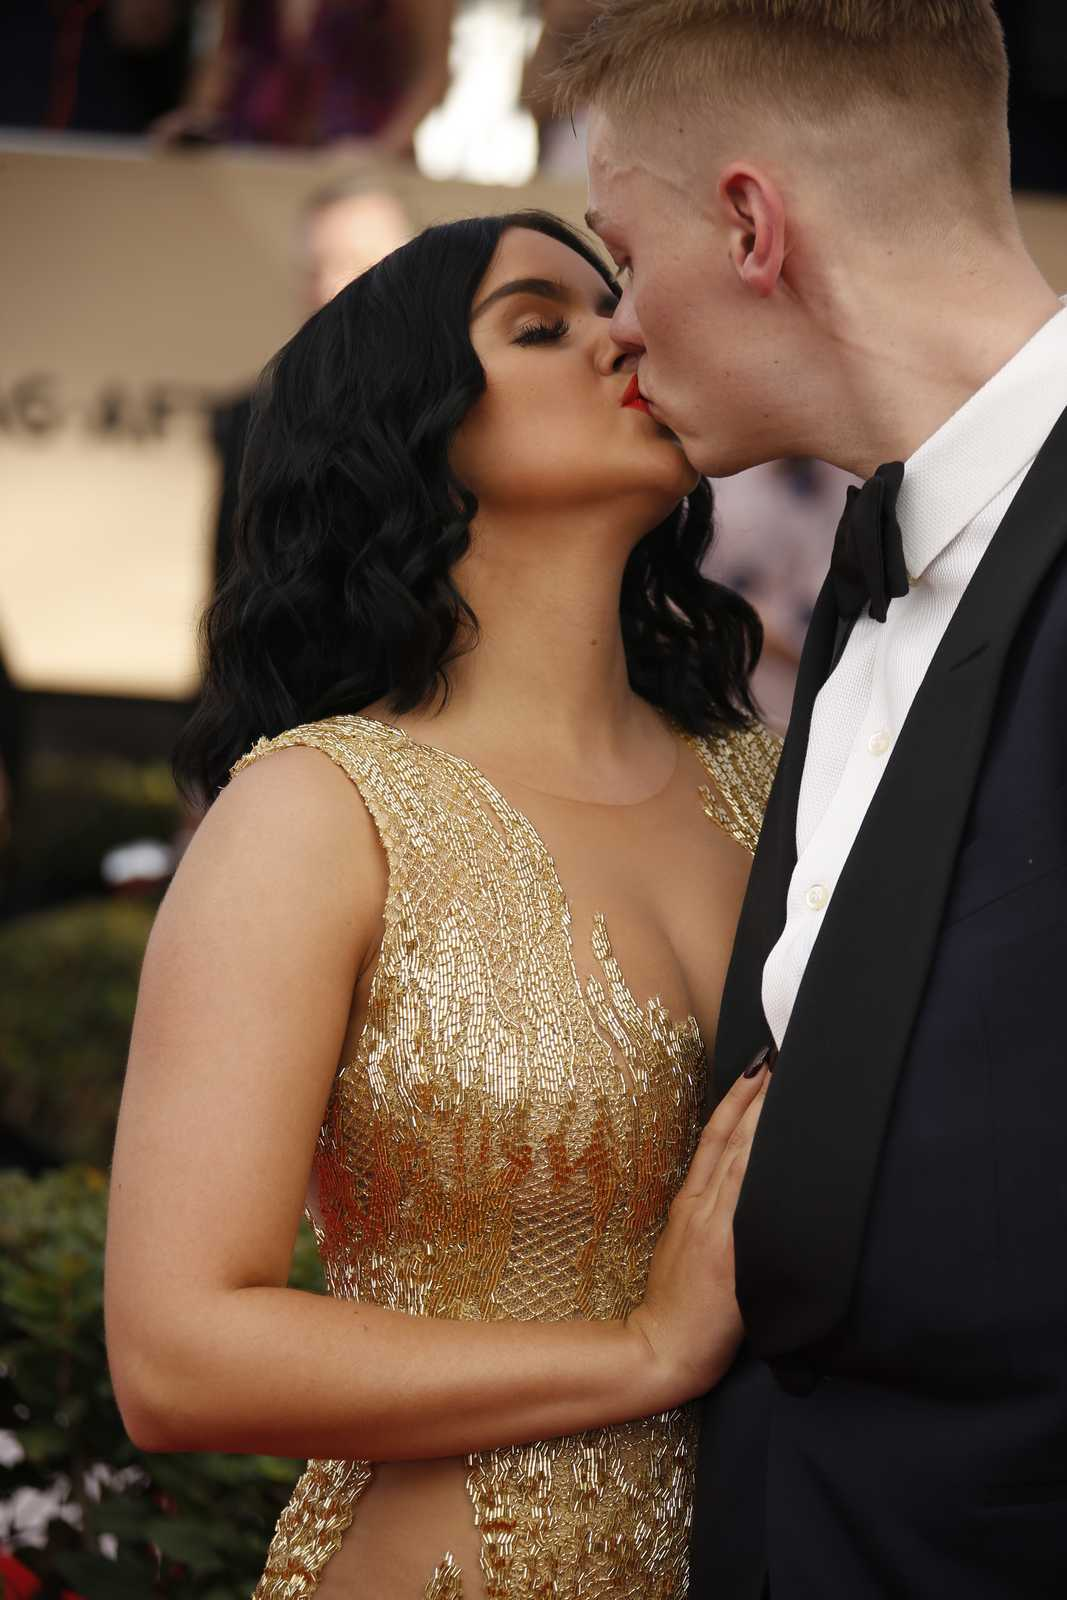 Ariel Winter stuns in gold lace gown as she kisses beau Levi Meaden, 29, at SAG Awards day after her 19th birthday bash